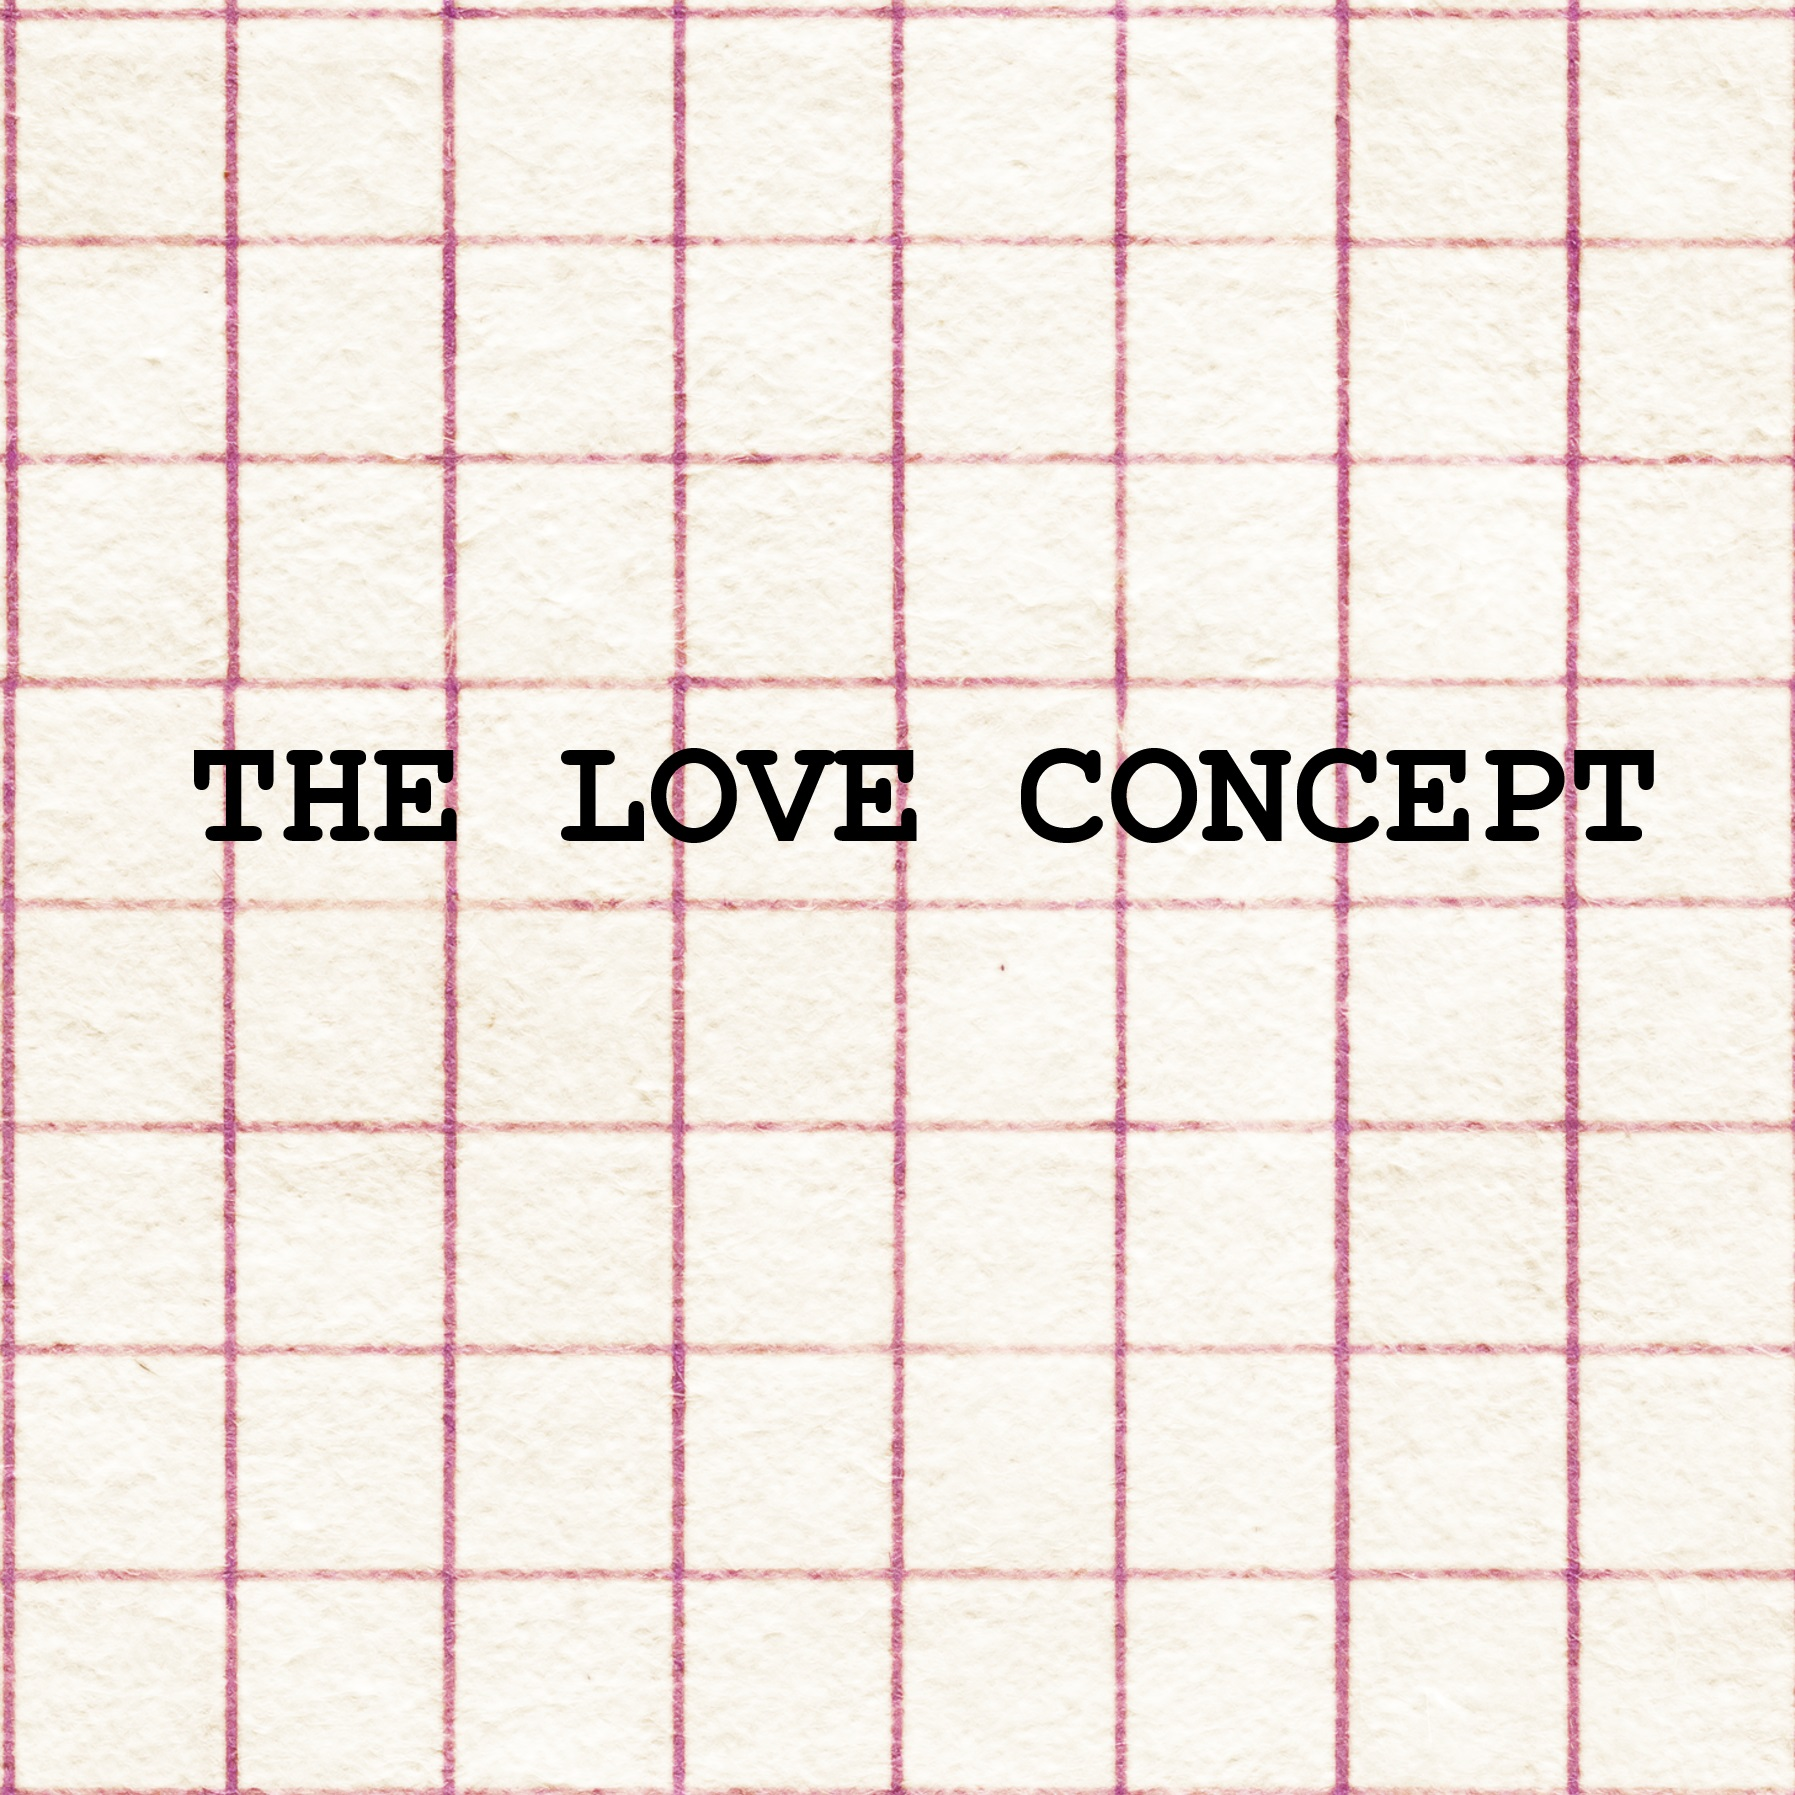 The Love Concept picture tiles